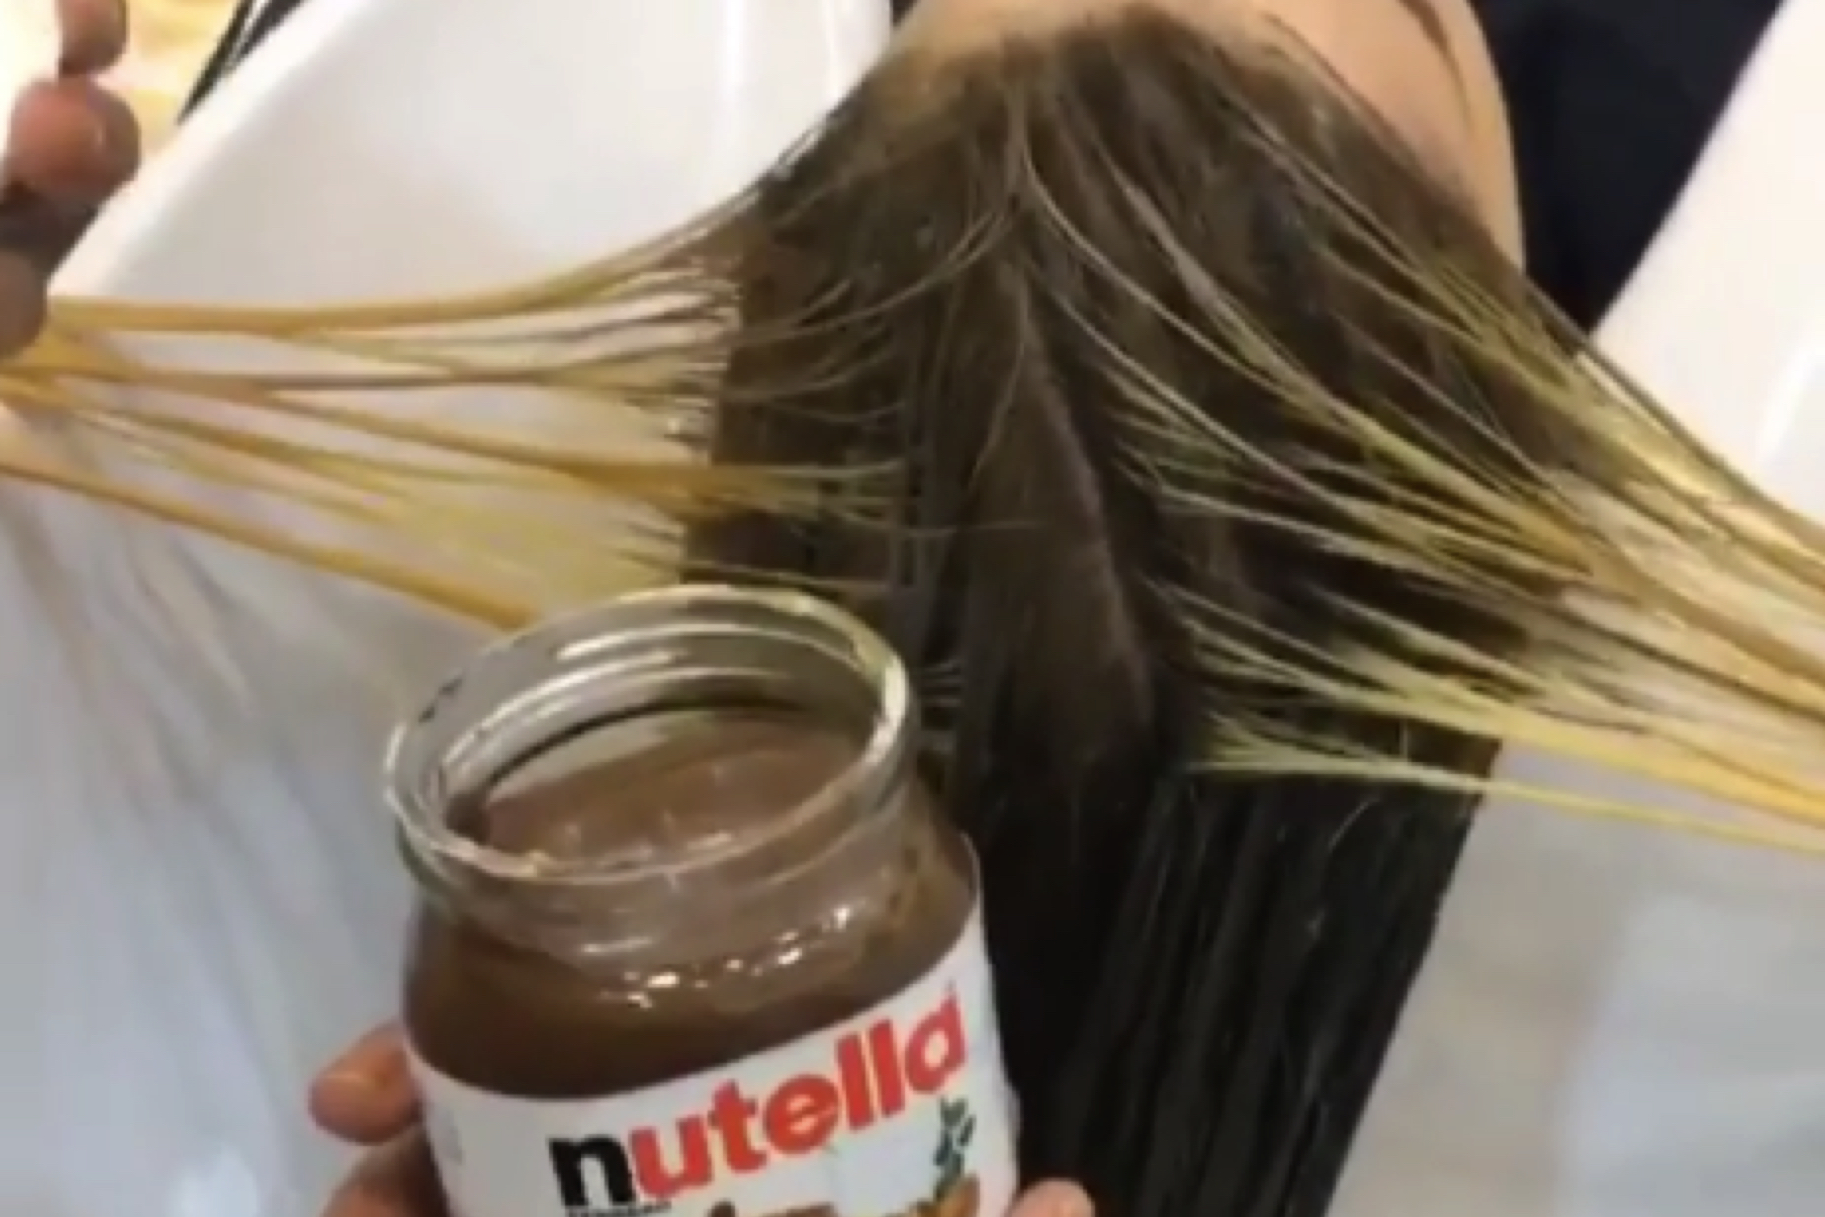 Beauty Hack Dye Your Hair With Nutella Very Real